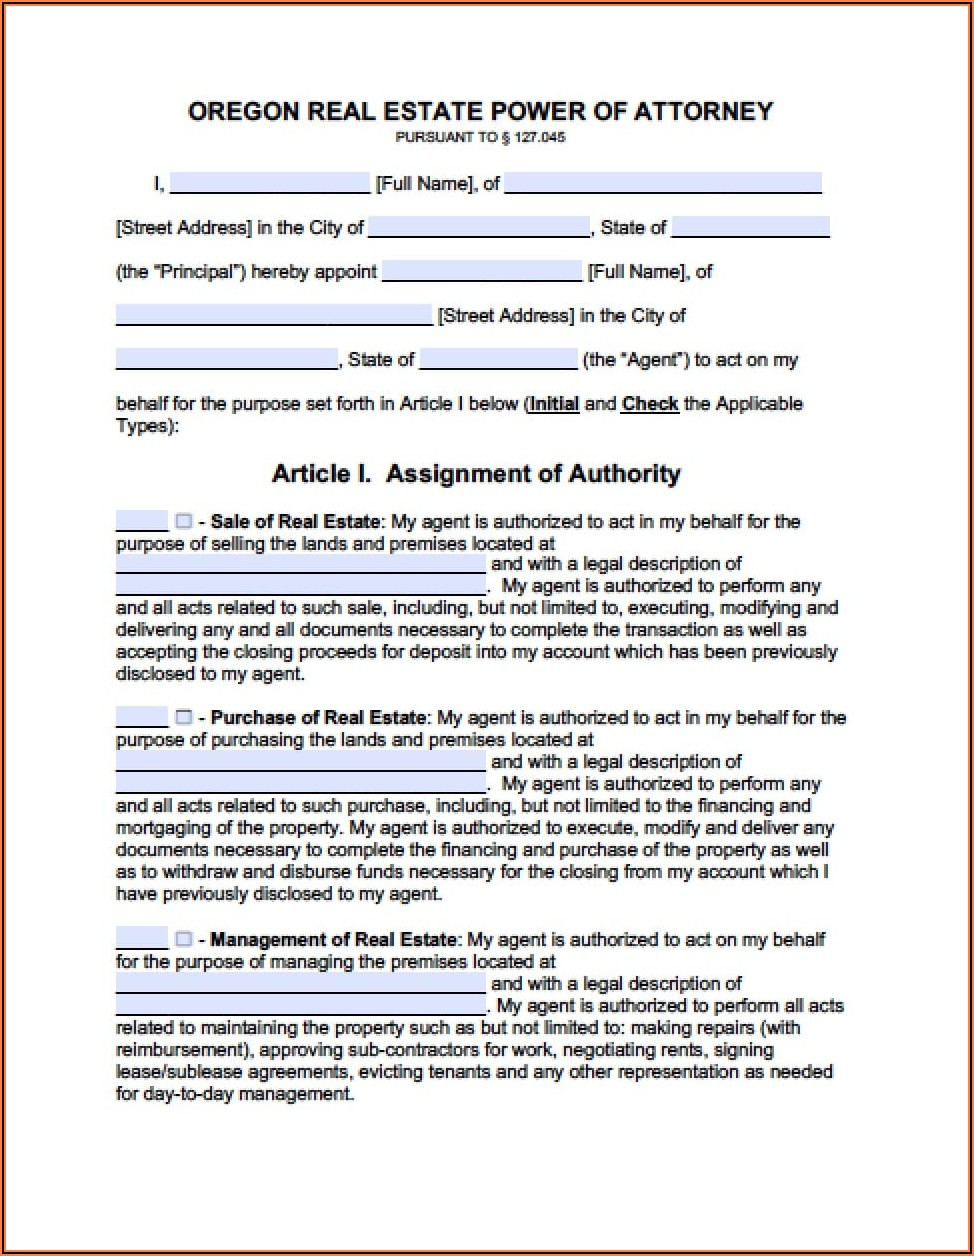 Oregon Power Of Attorney Form Instructions